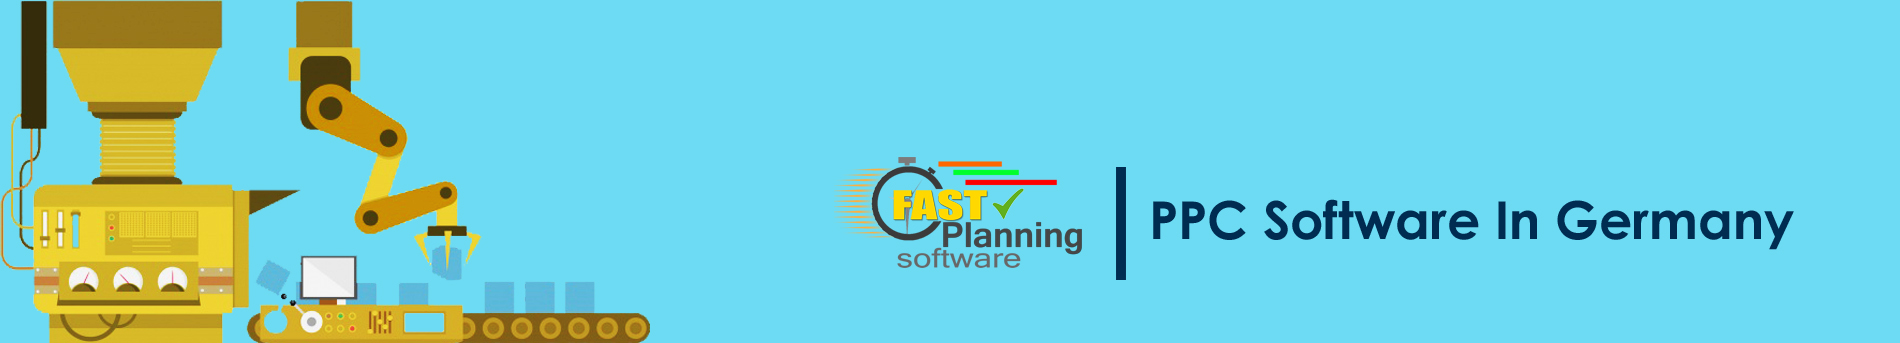 Production Planning and Control Software in Germany